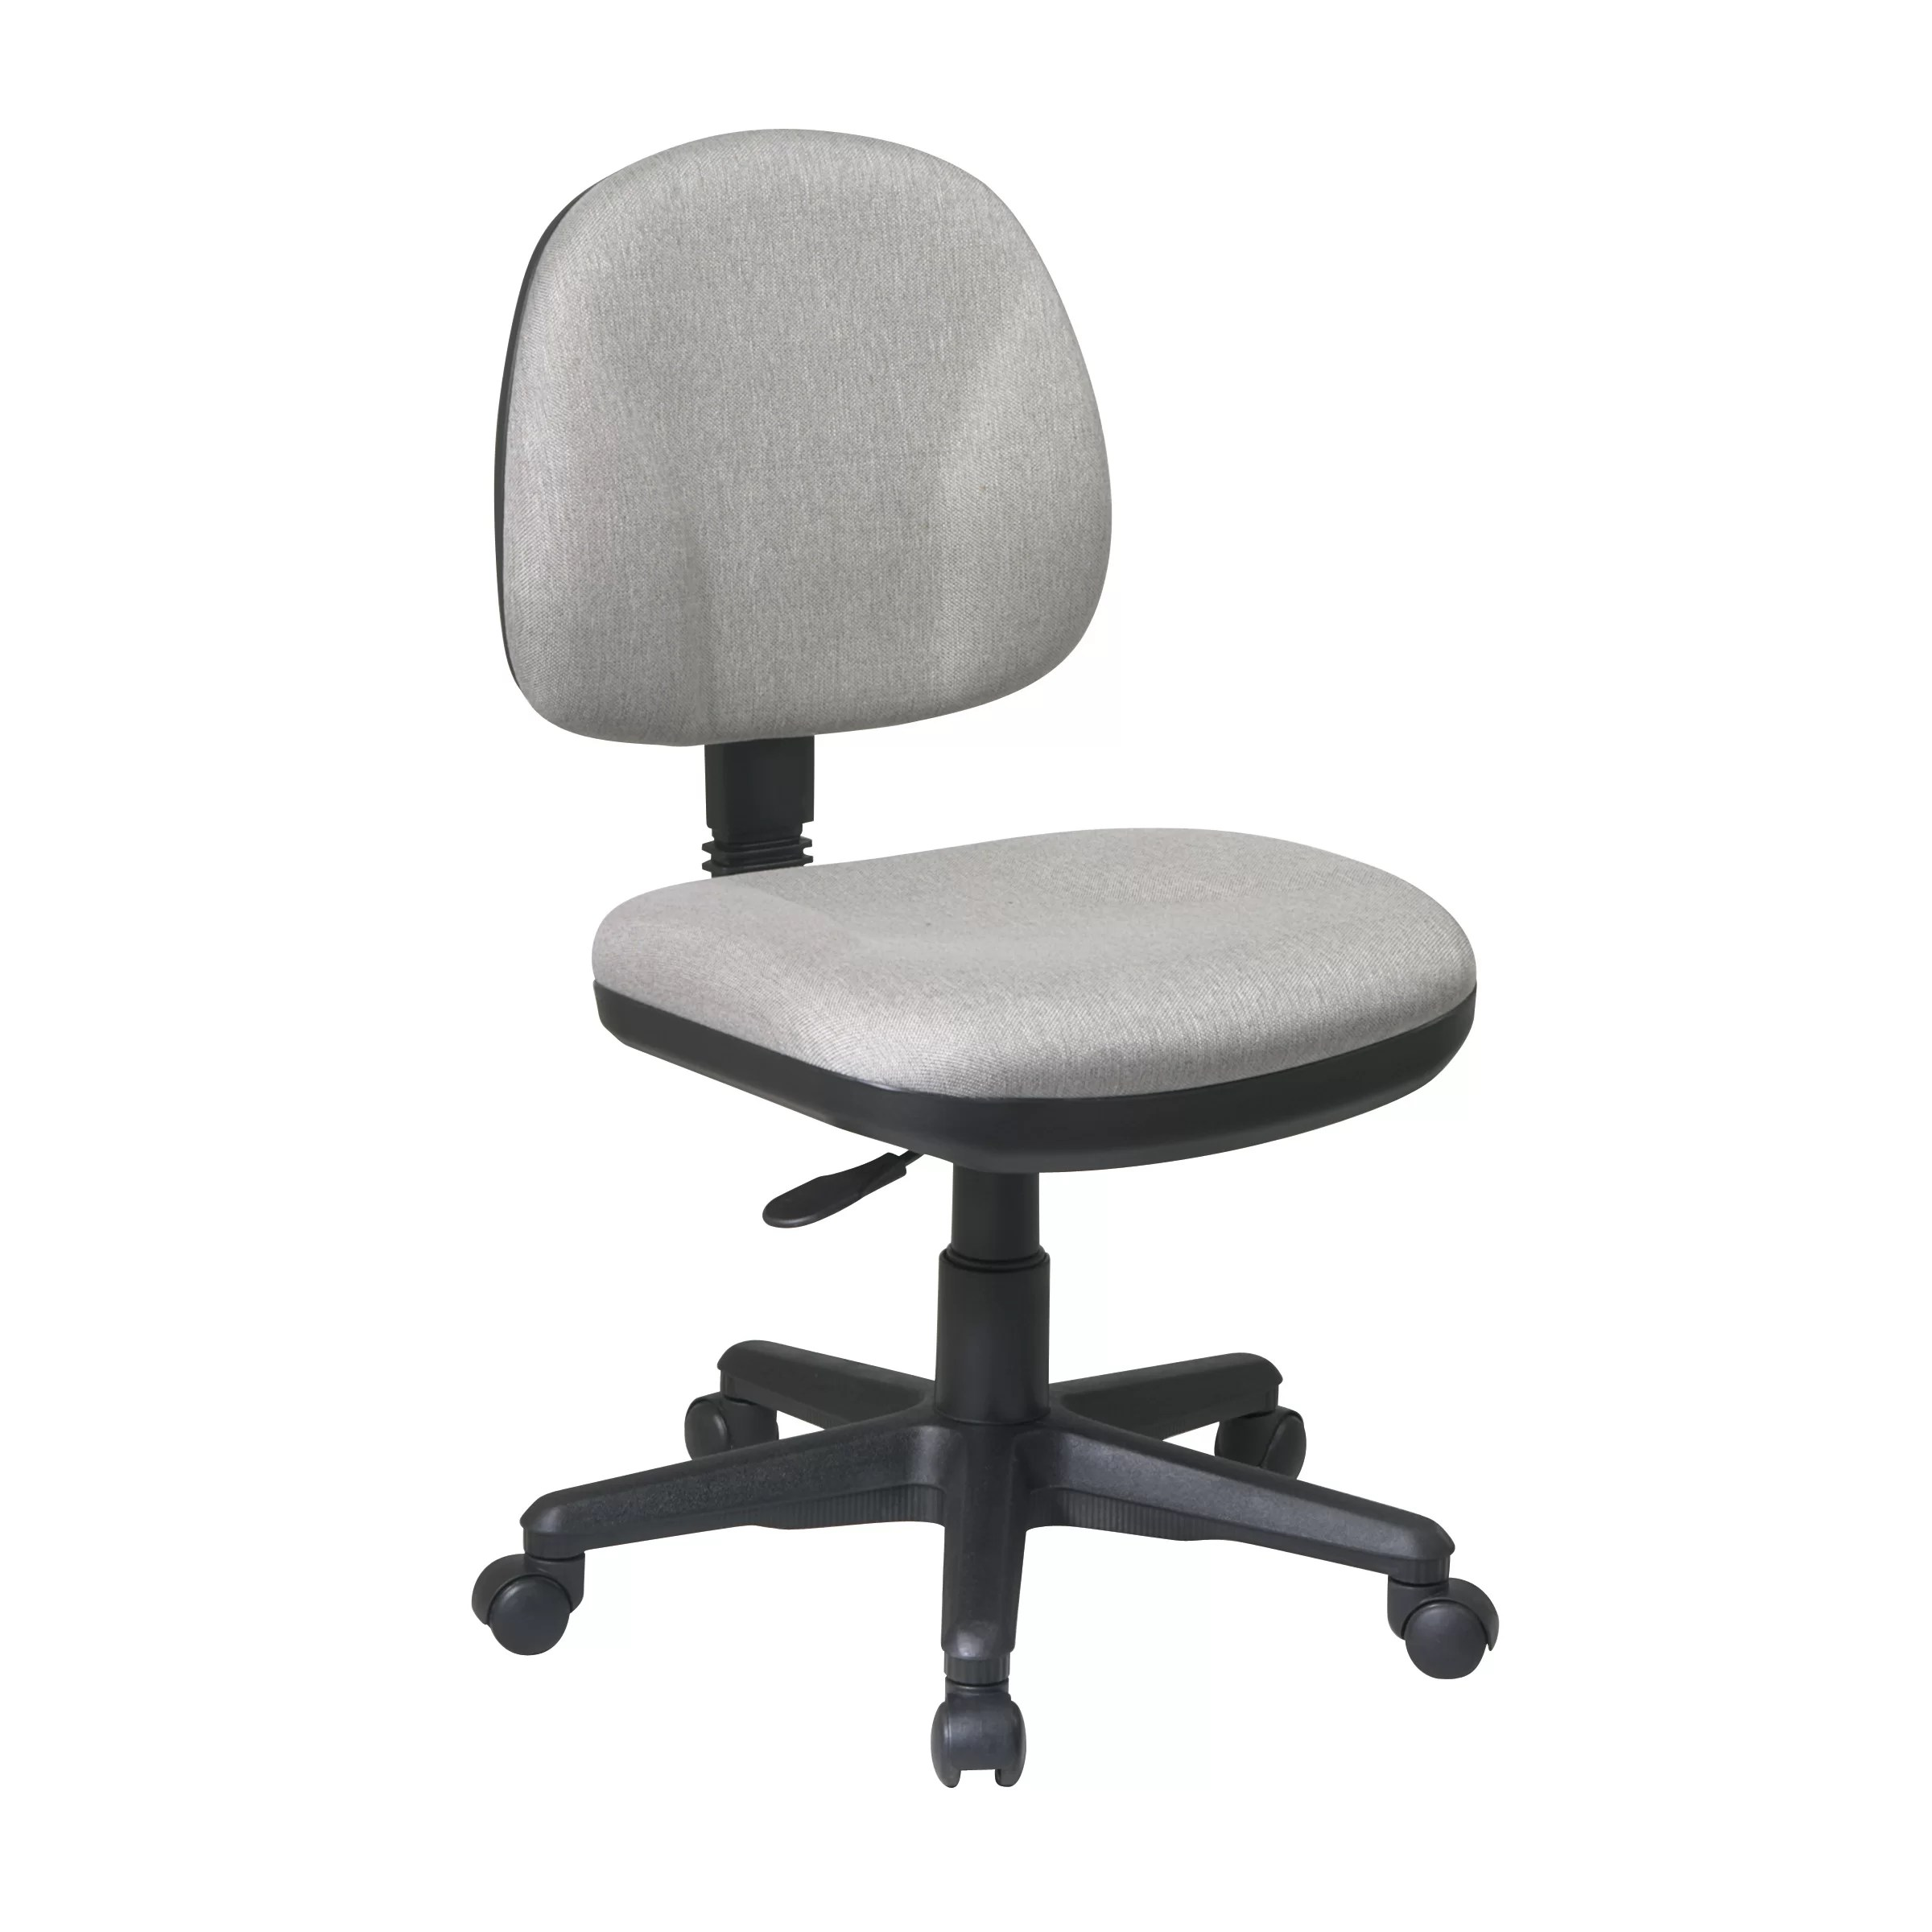 chair without back cast iron table and chairs perth office star sculptured low task arms